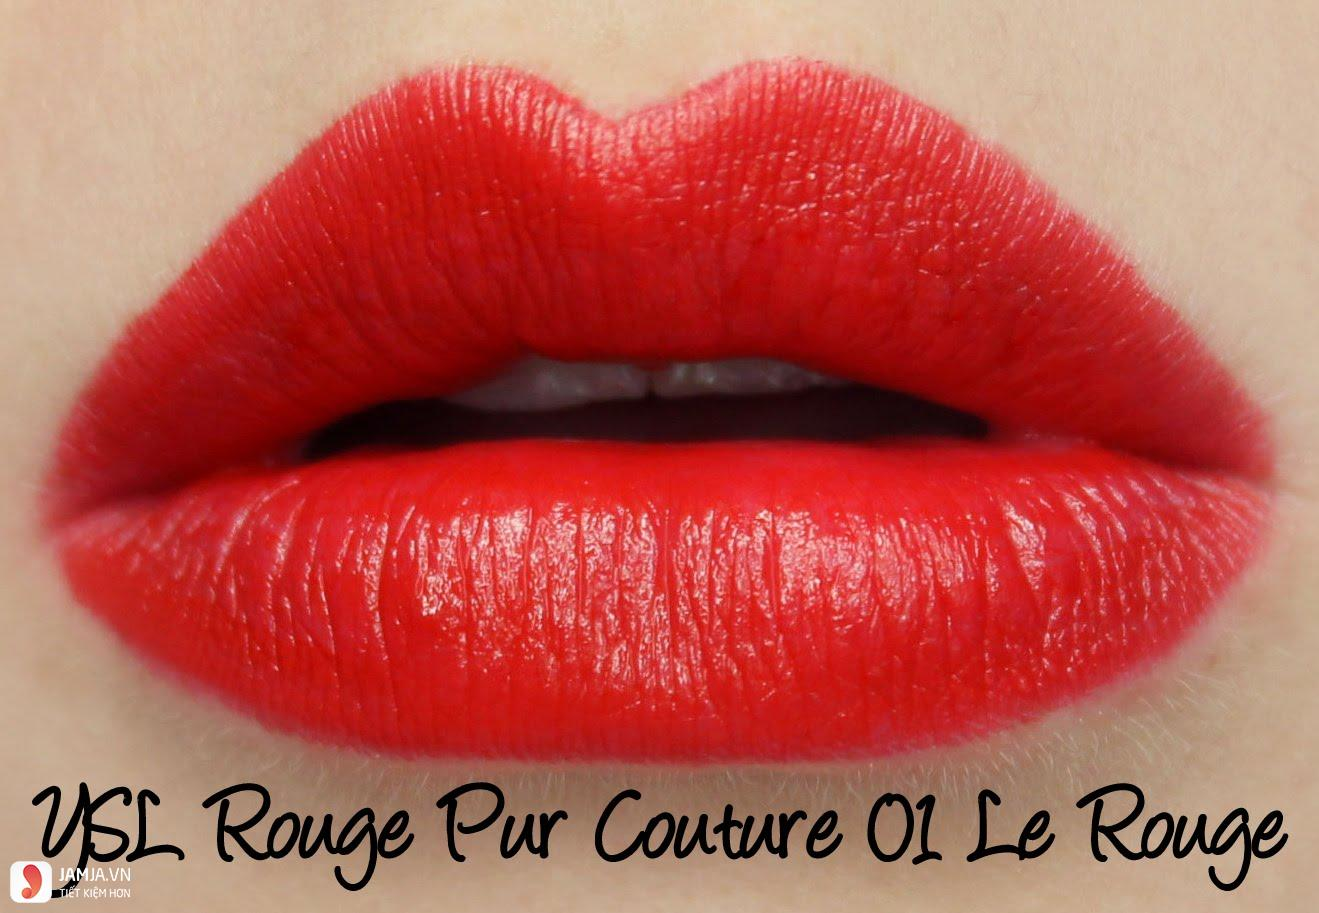 YSL Rouge Pur Couture 01 Le Rouge